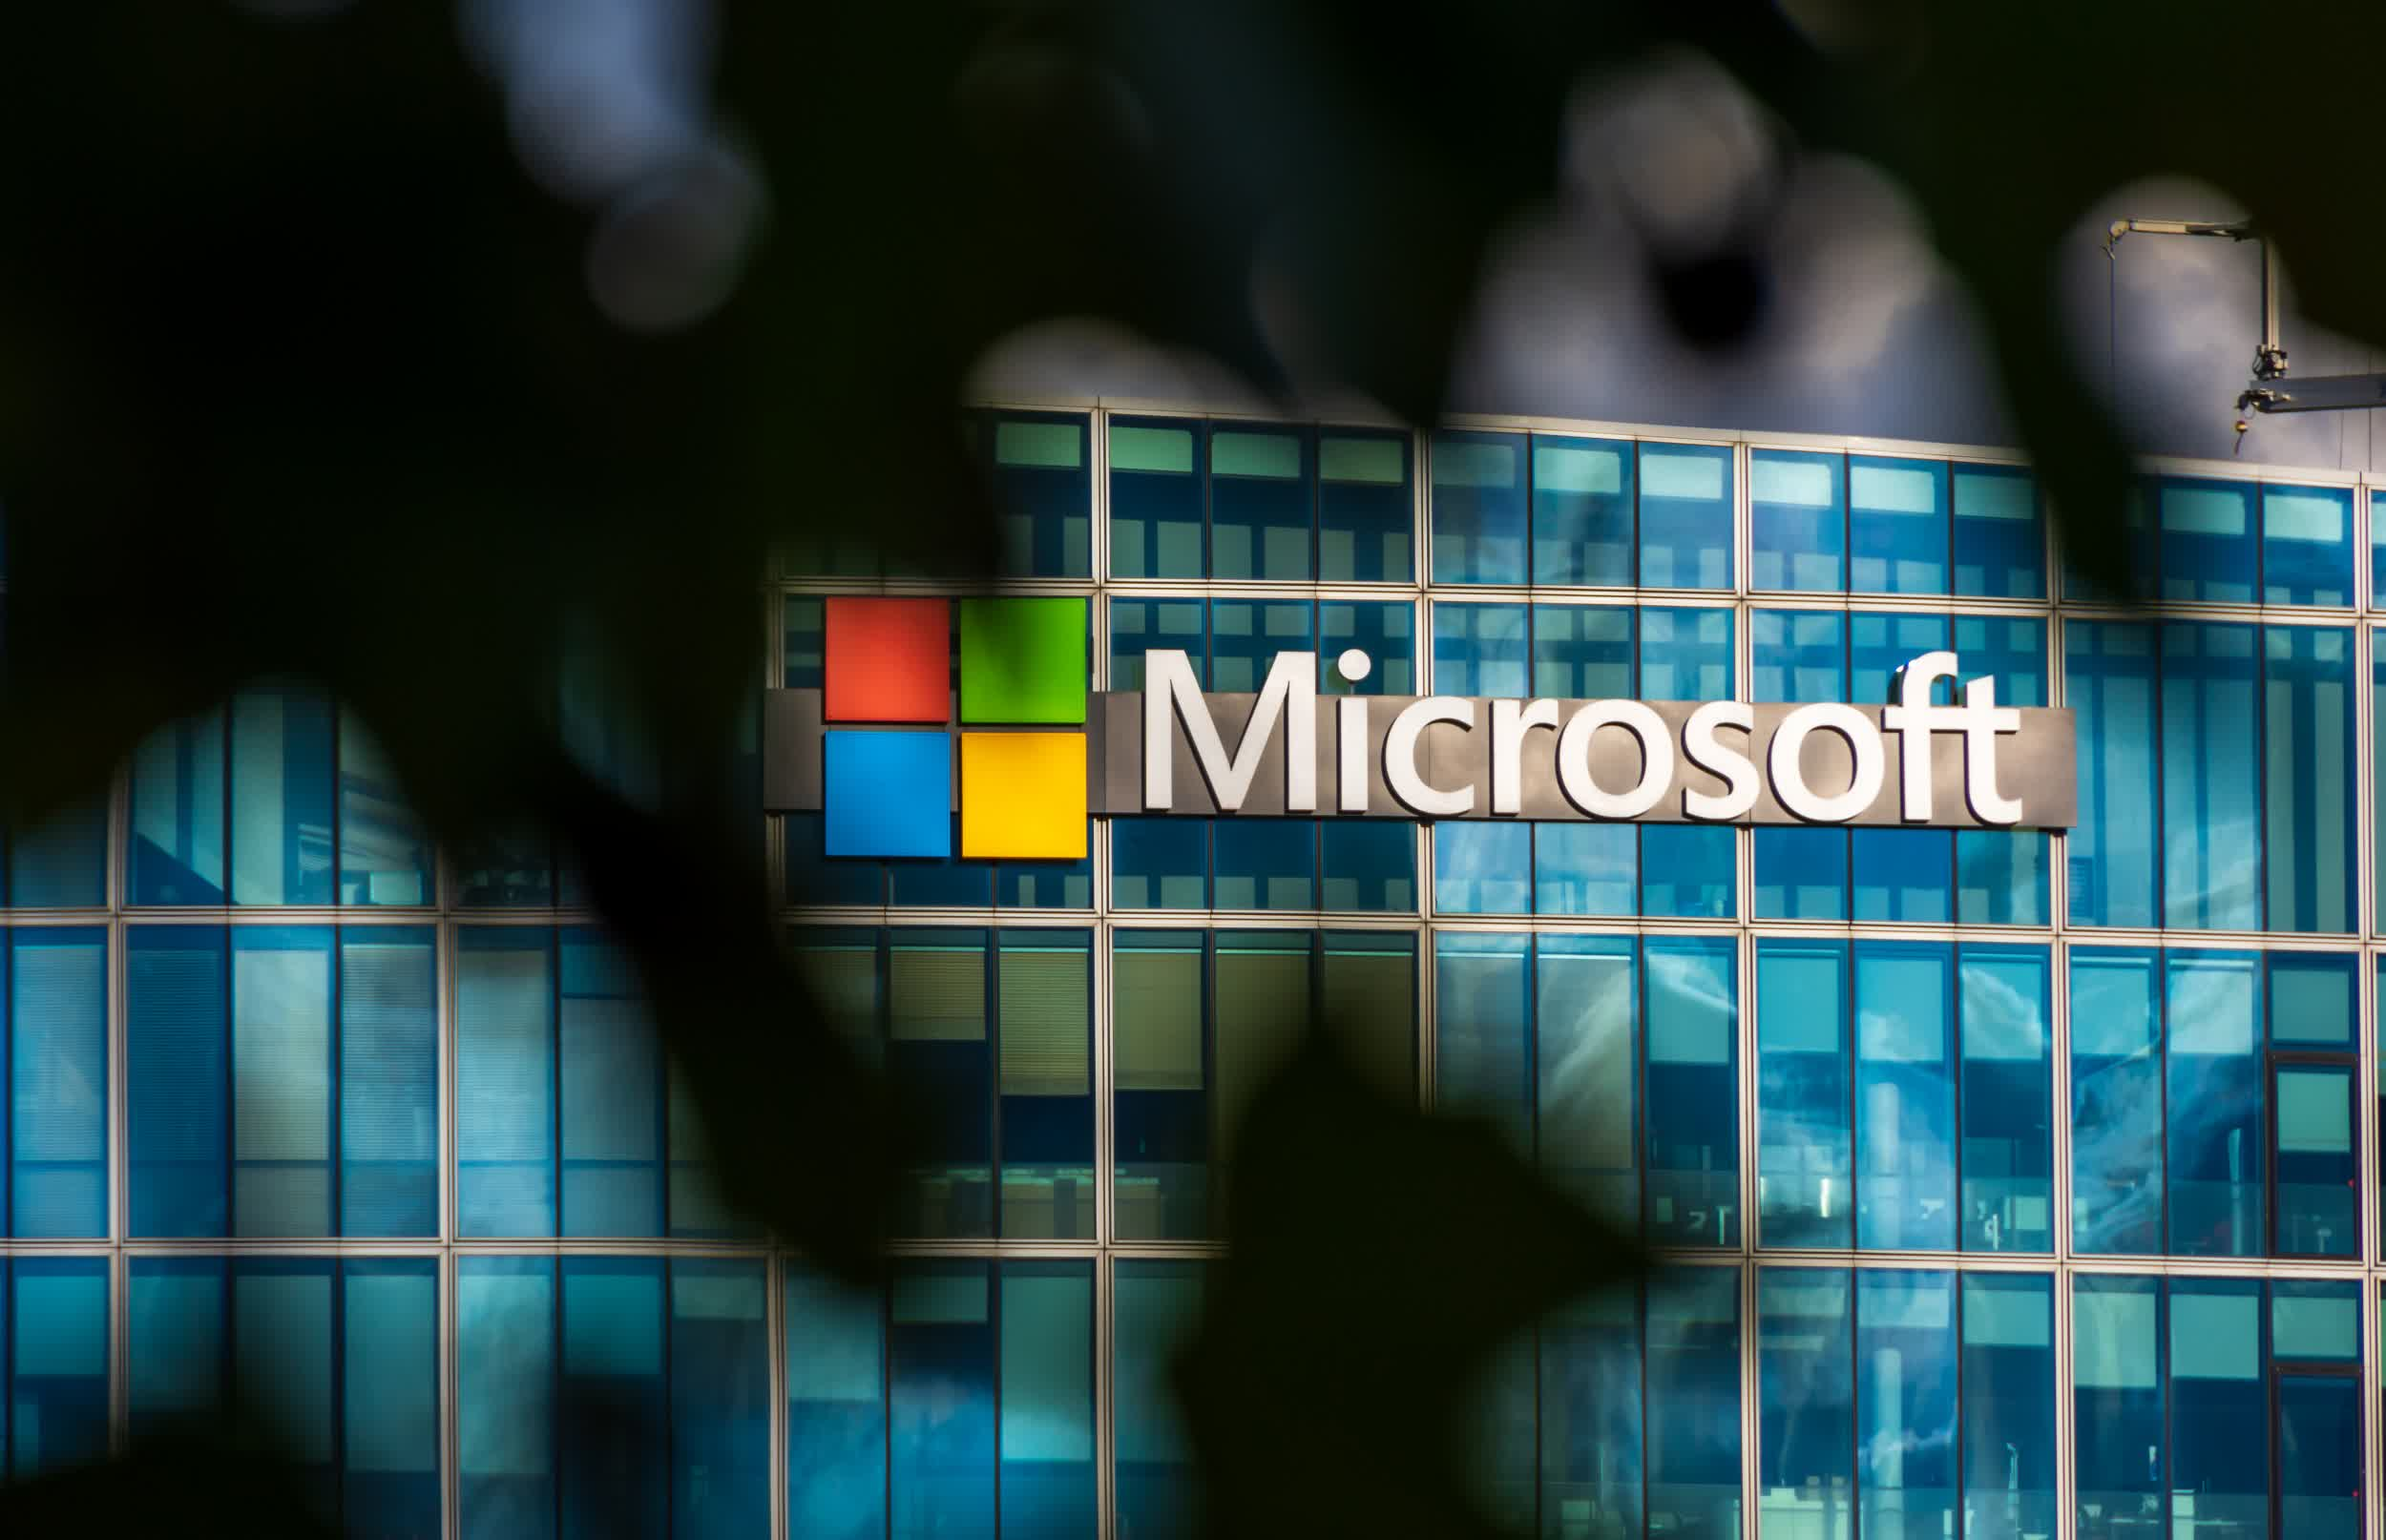 Some Microsoft employees slept in data centers during the pandemic to avoid lockdown